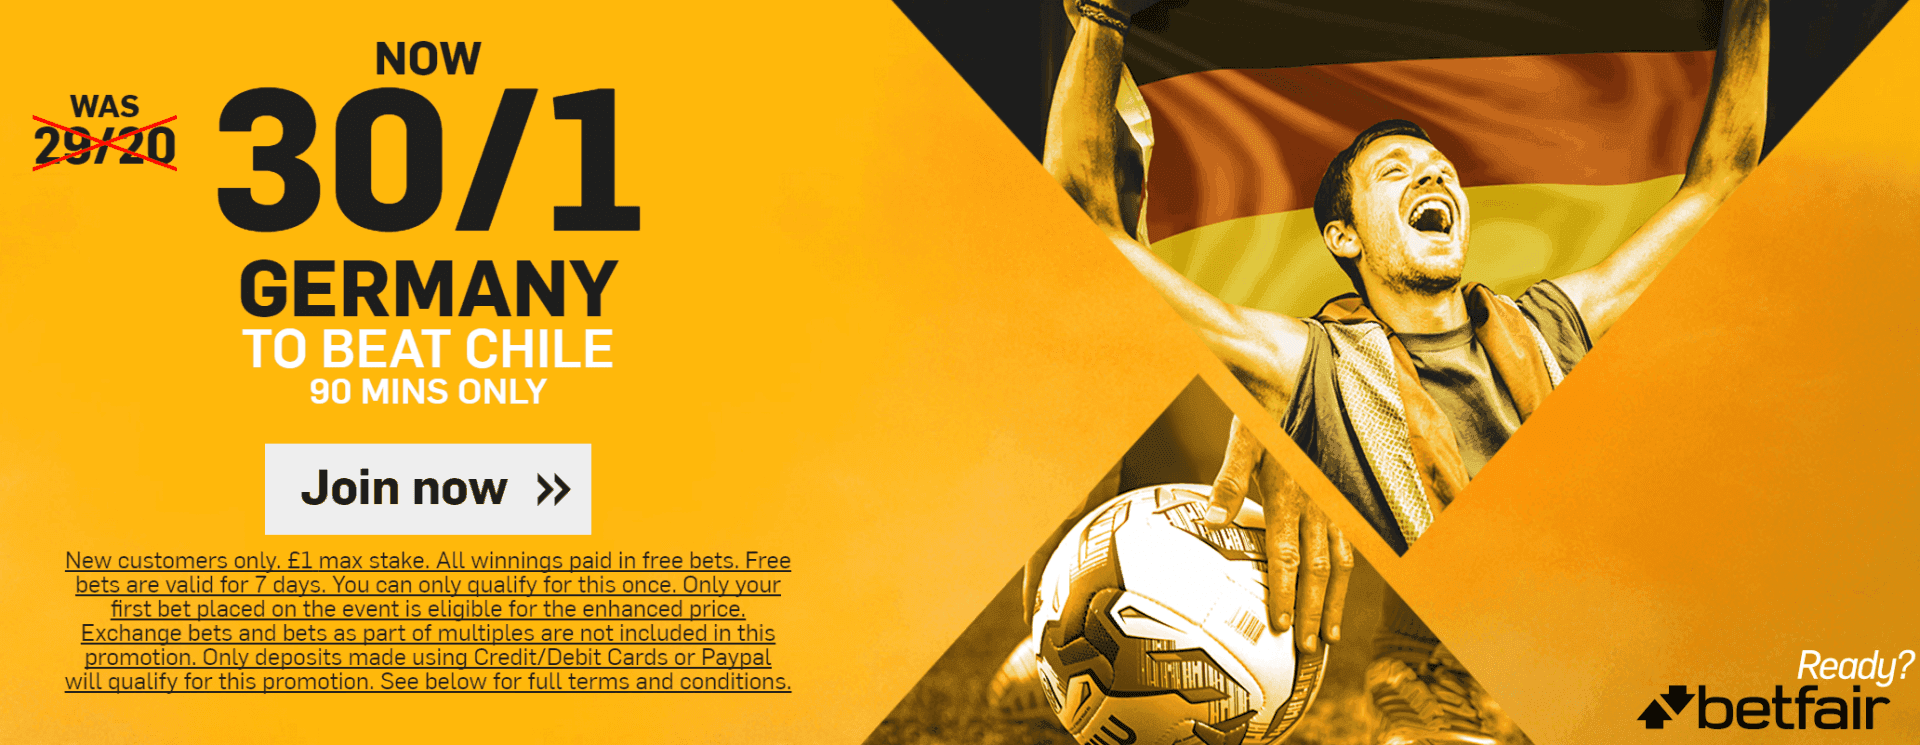 betfair Germany